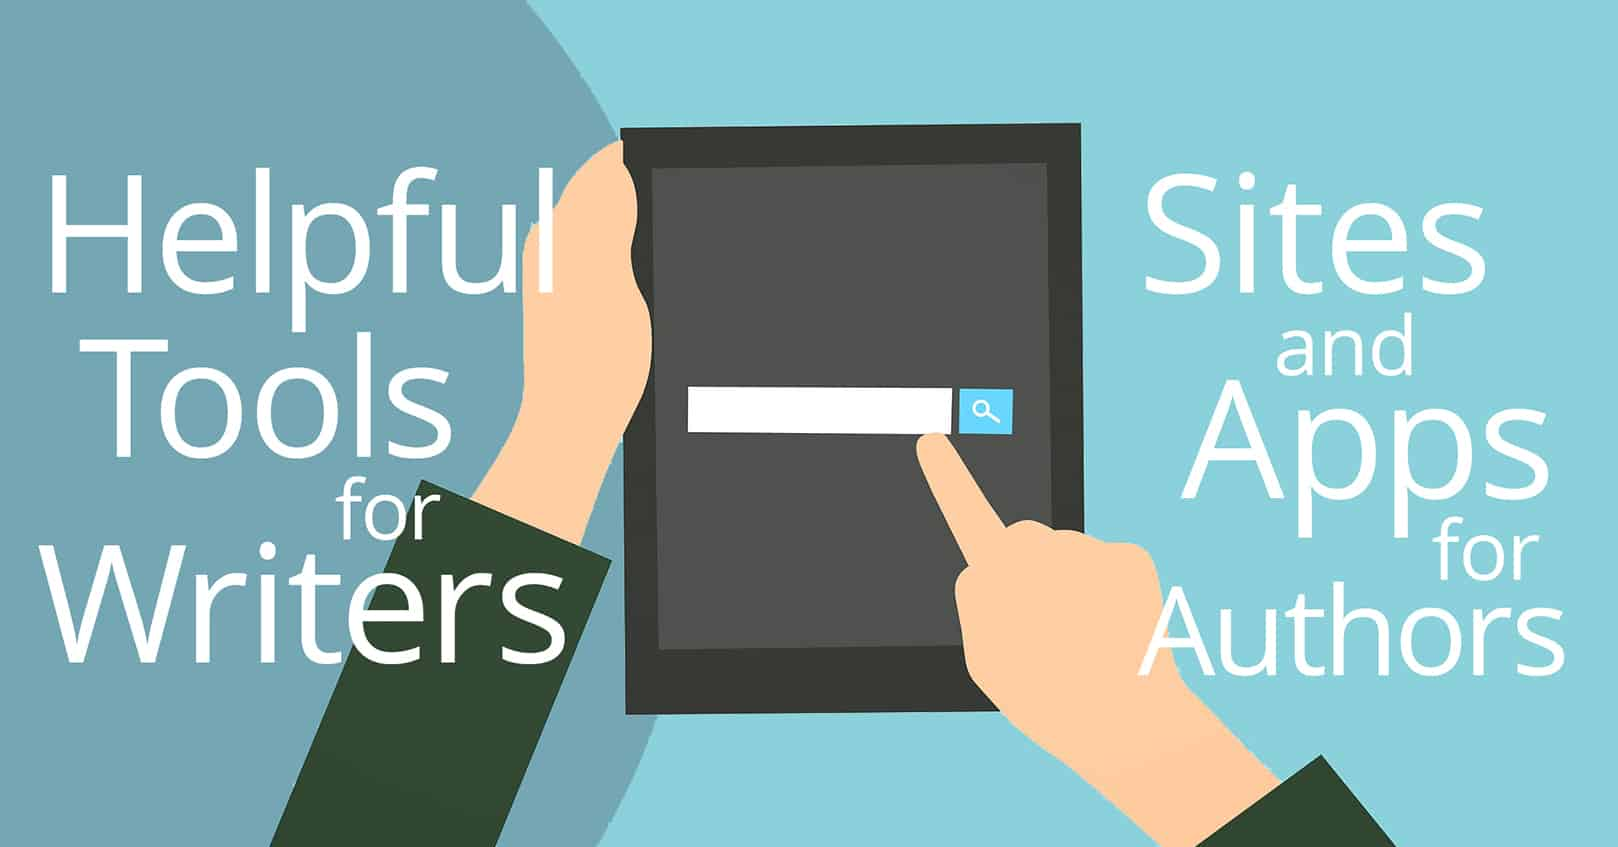 helpful tools for authors: sites and apps for authors